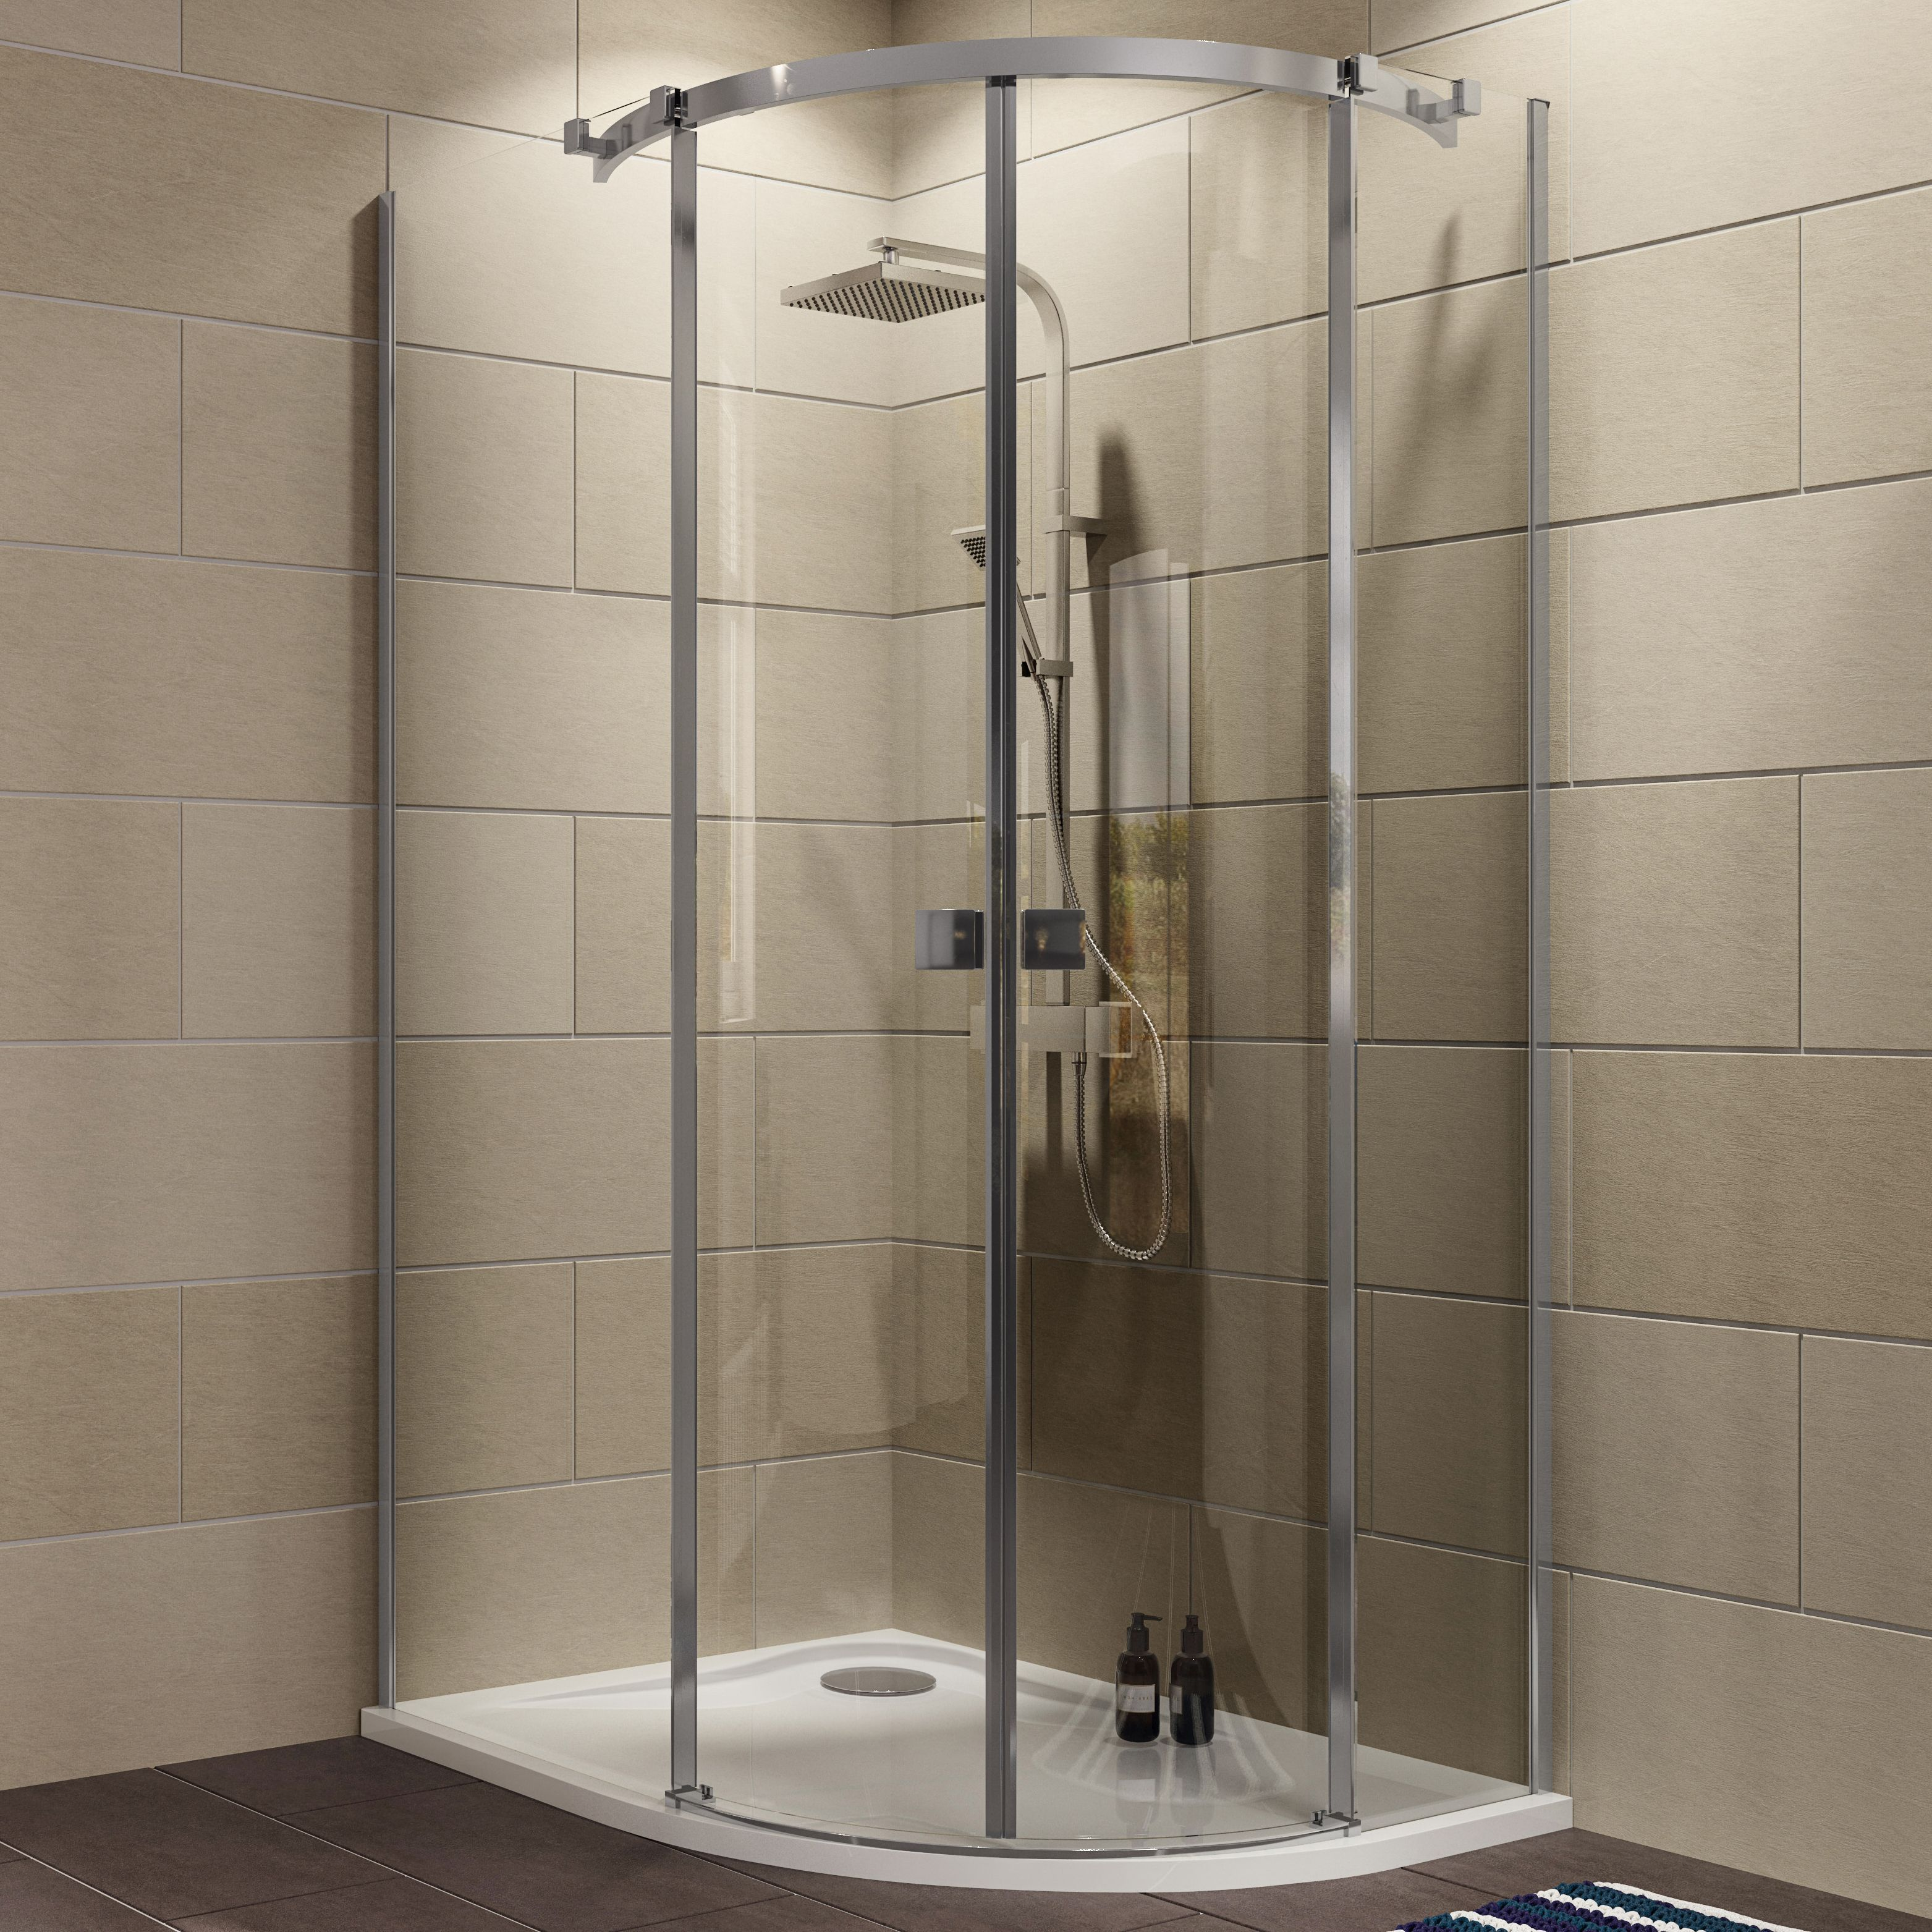 Cooke & Lewis Luxuriant Offset Quadrant Lh Shower Enclosure, Tray & Waste Pack With Double Sliding Doors (w)1200mm (d)90